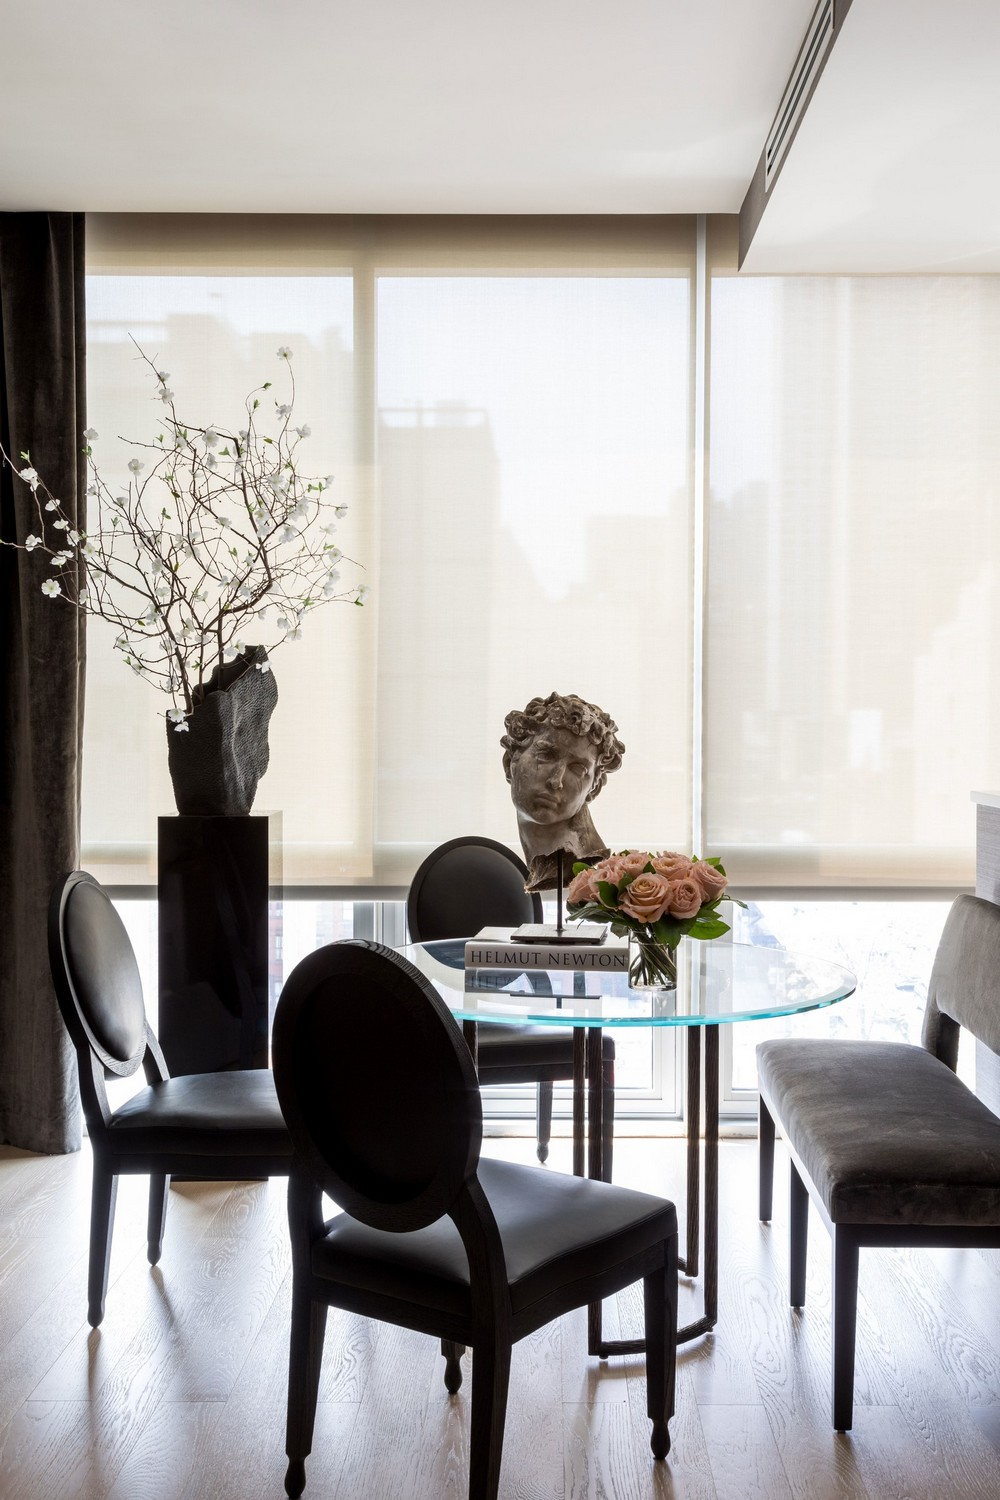 Luxury, Old-world Romance and Urban Cool: Dining Rooms by Ryan Korban ryan korban Luxury, Old-world Romance and Urban Cool: Dining Rooms by Ryan Korban 3 AD 2